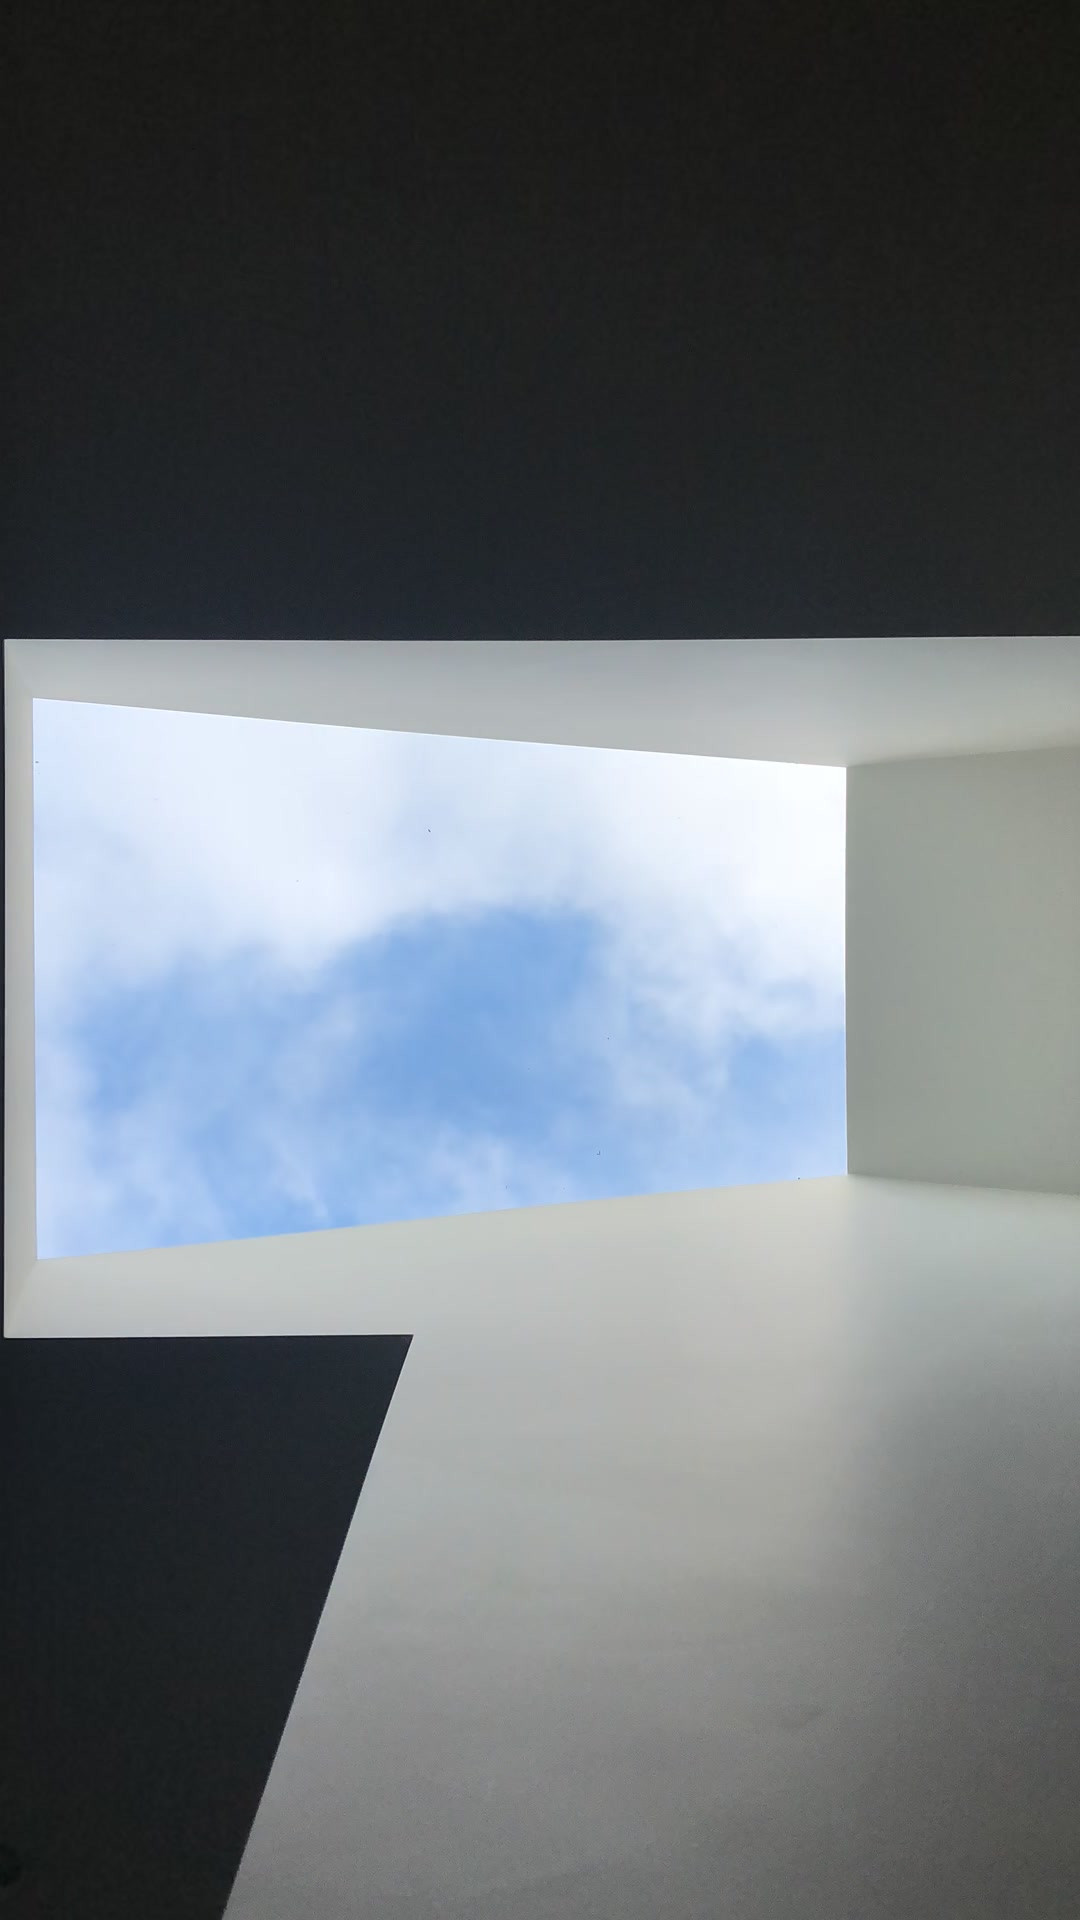 Modern house architecture skylight in Haslemere